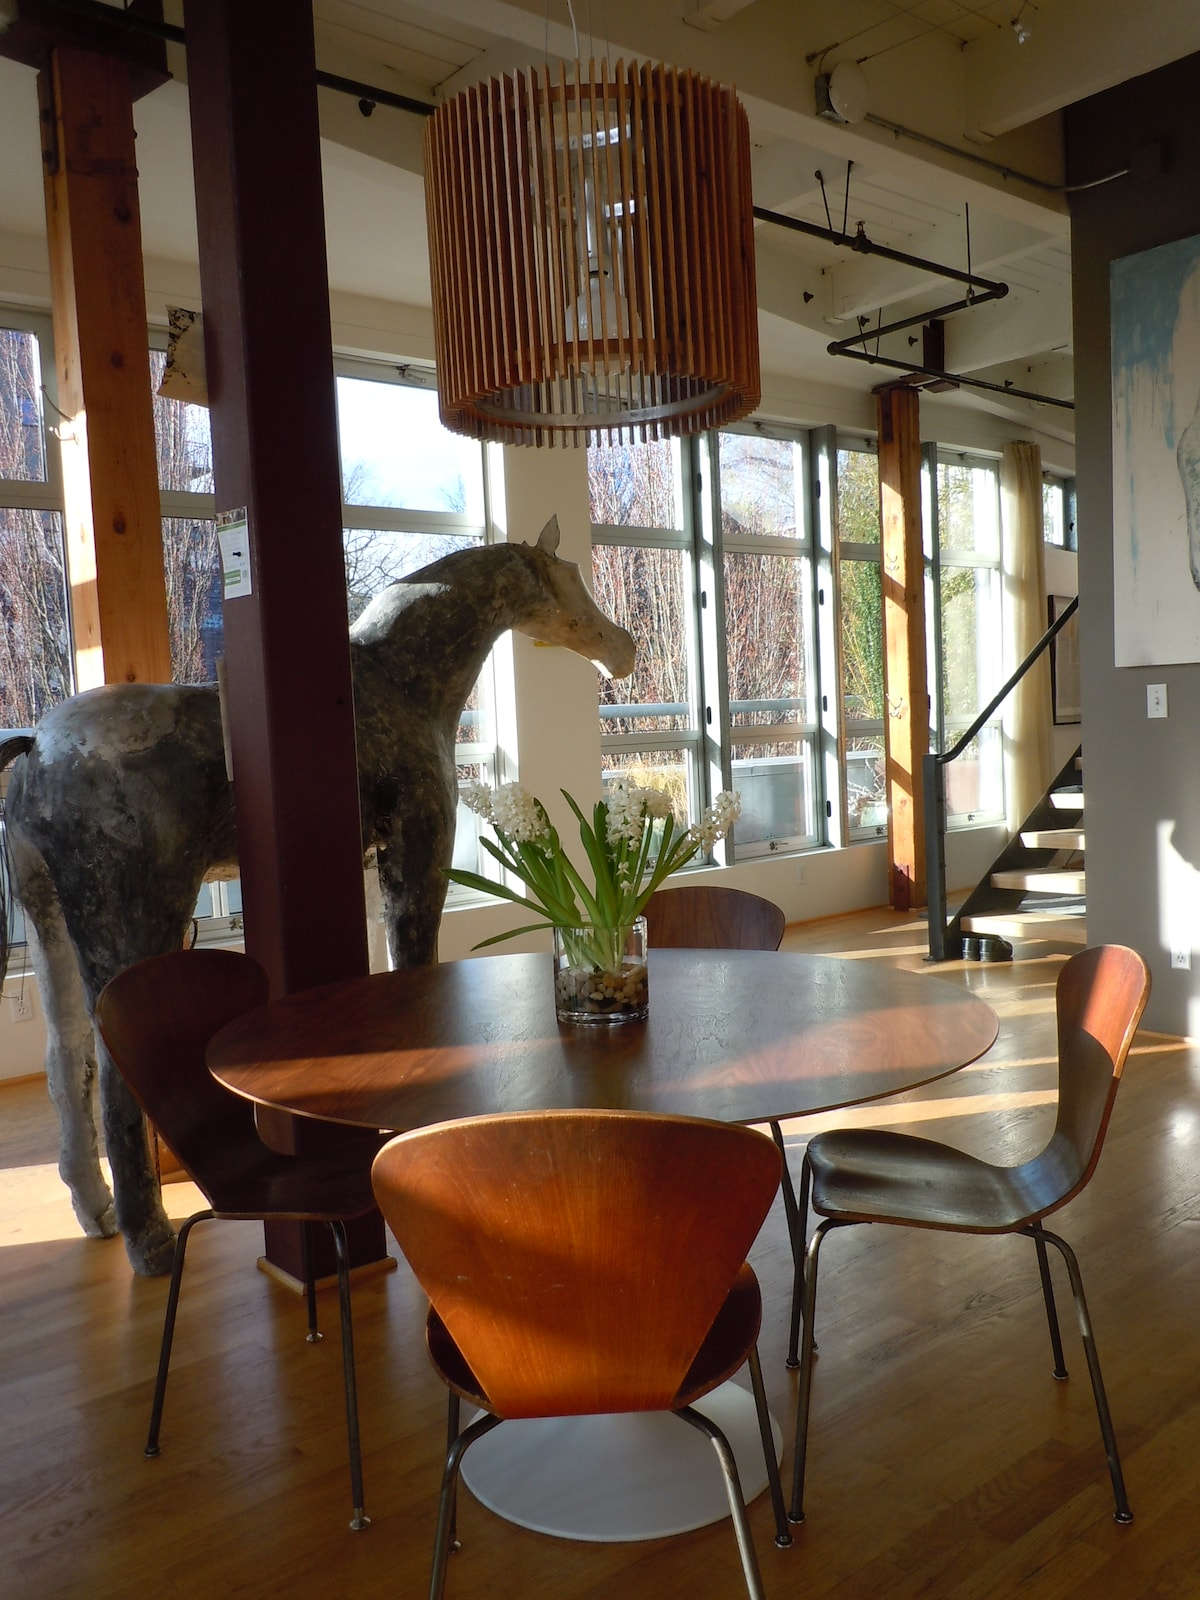 dining room with sculpture (we call him Edmond) and floor to ceiling windows